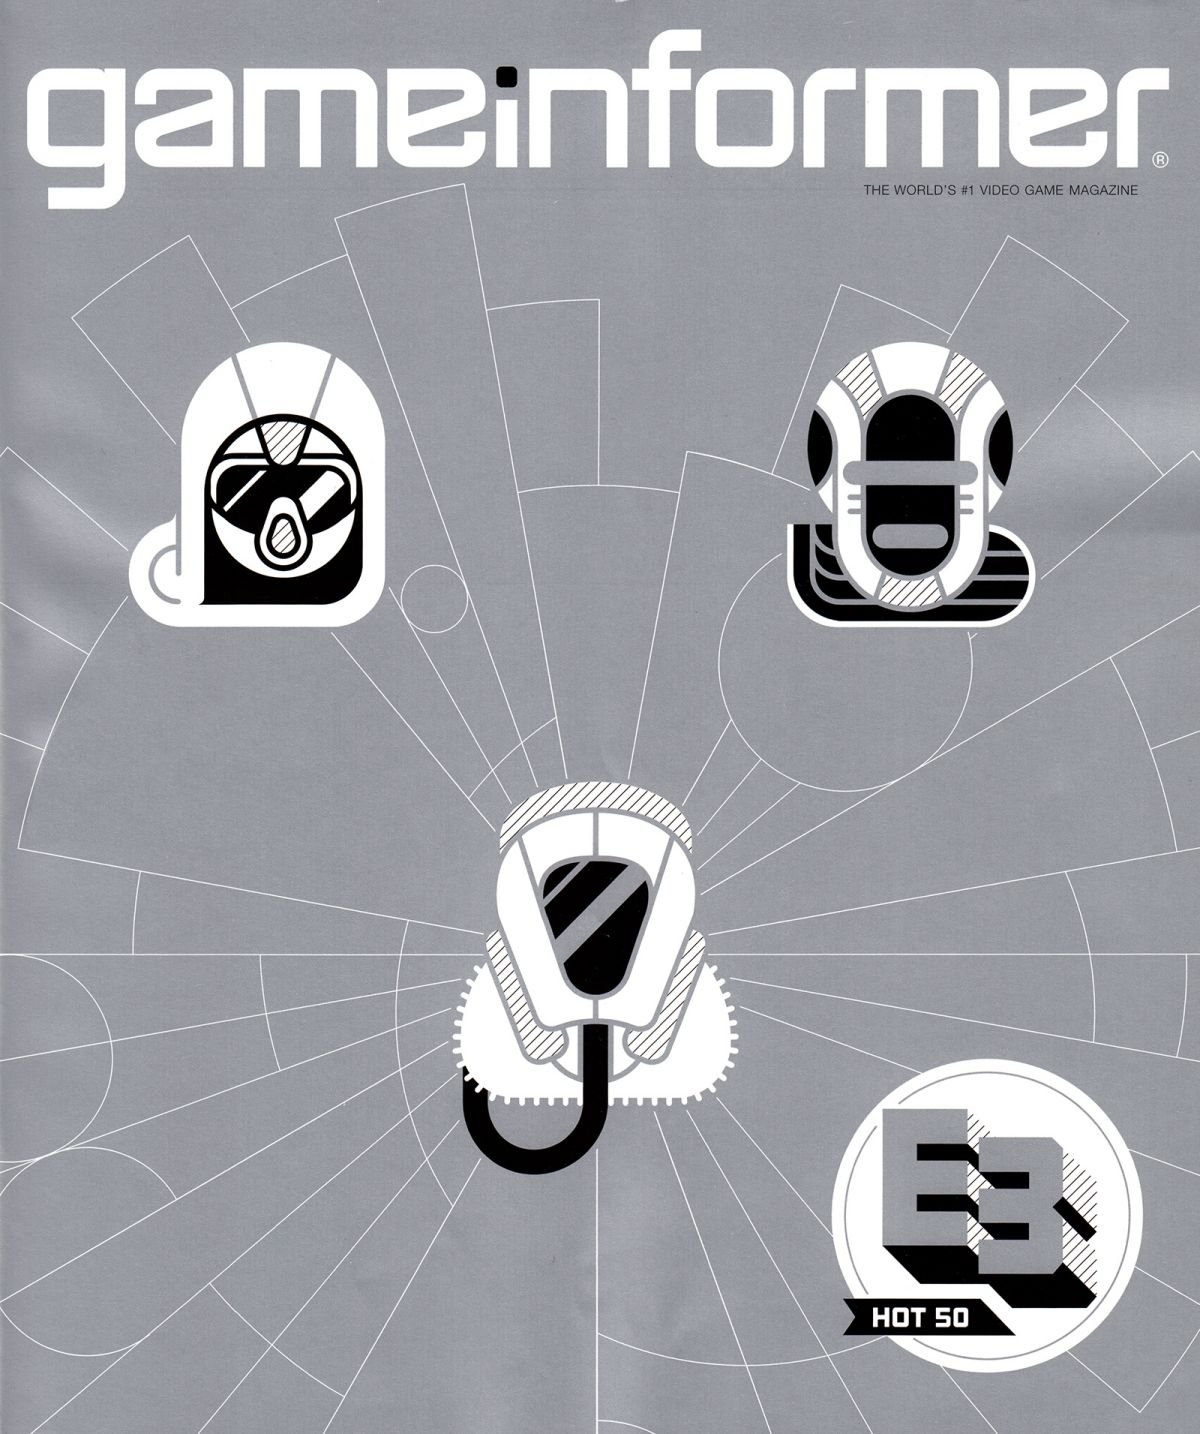 Game Informer Issue 244 August 2013 (Cover 1 of 5)